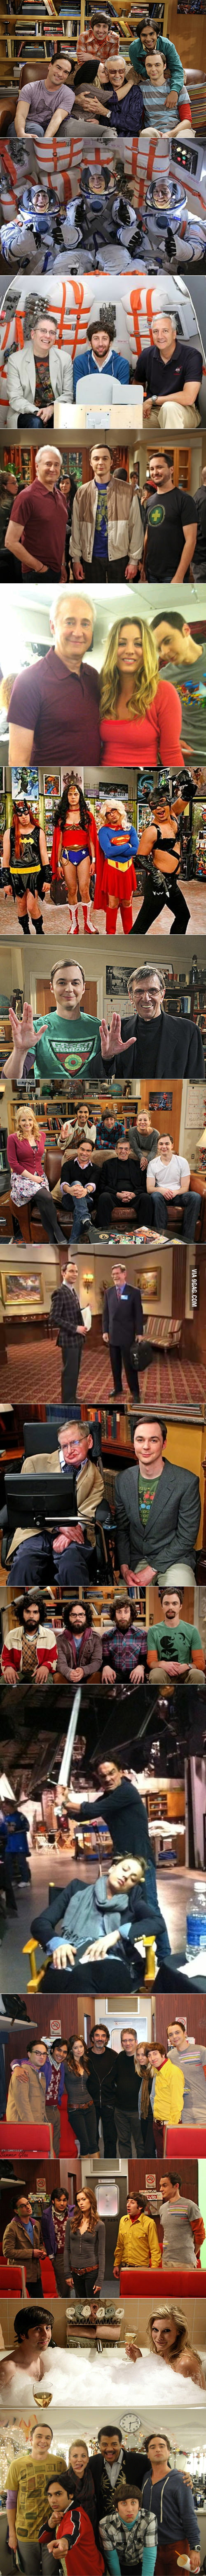 It's good to be in The Big Bang Theory